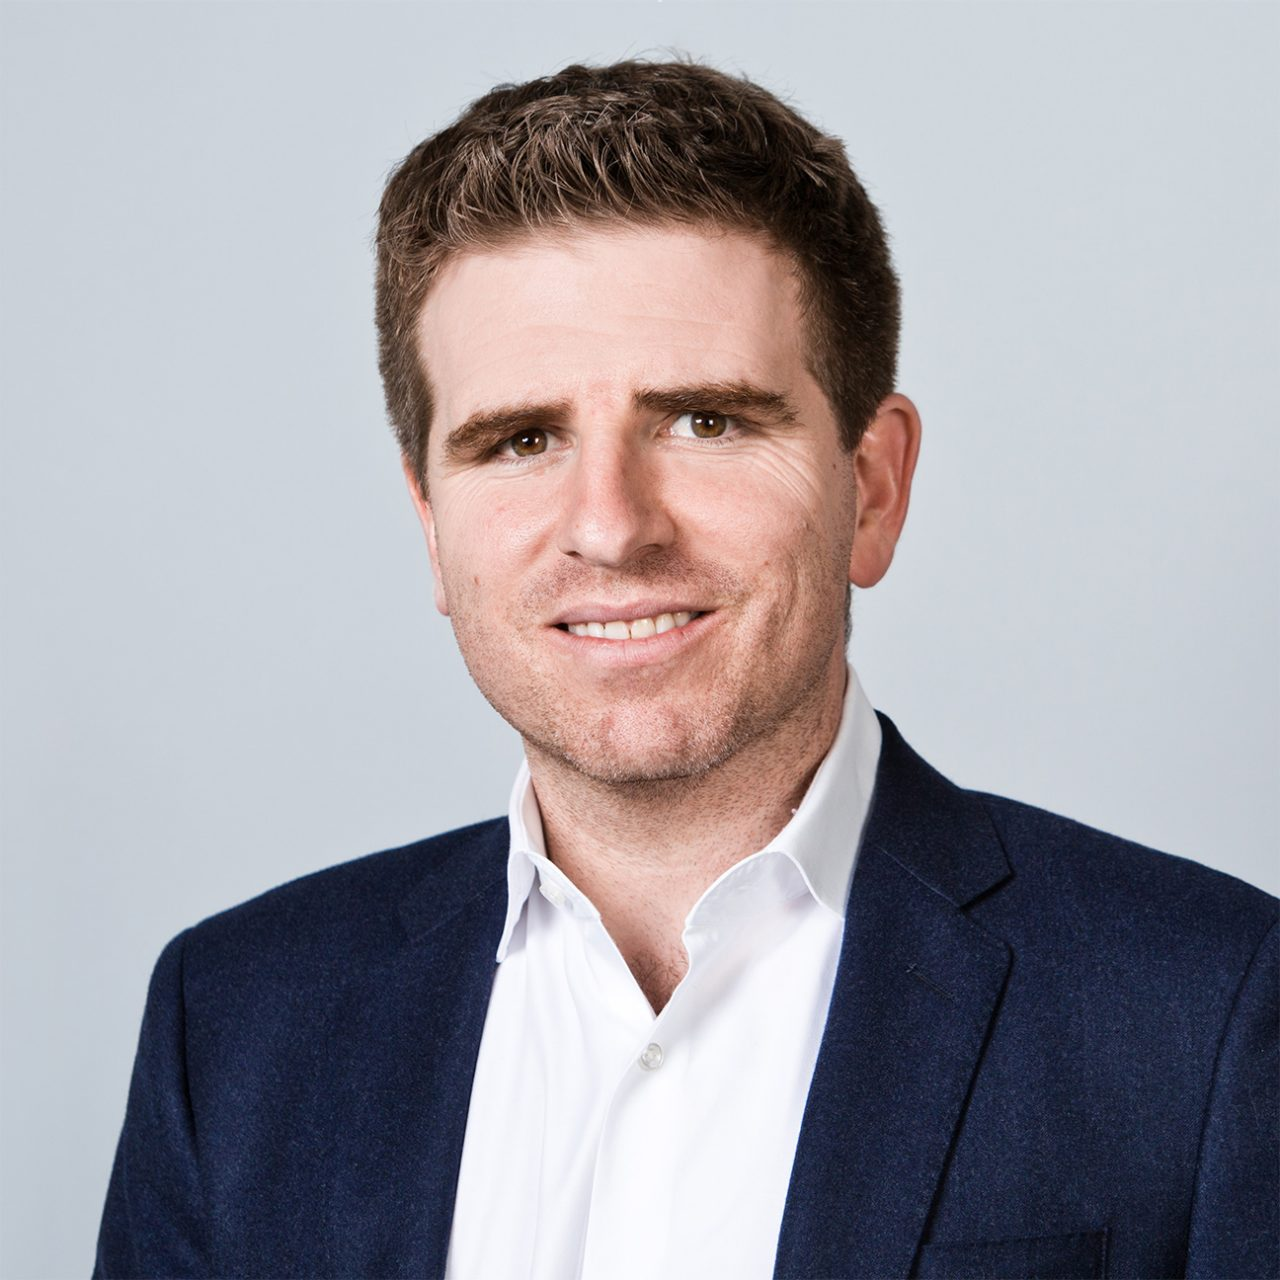 Ben Marcus, Chairman and Co-Founder, AirMap